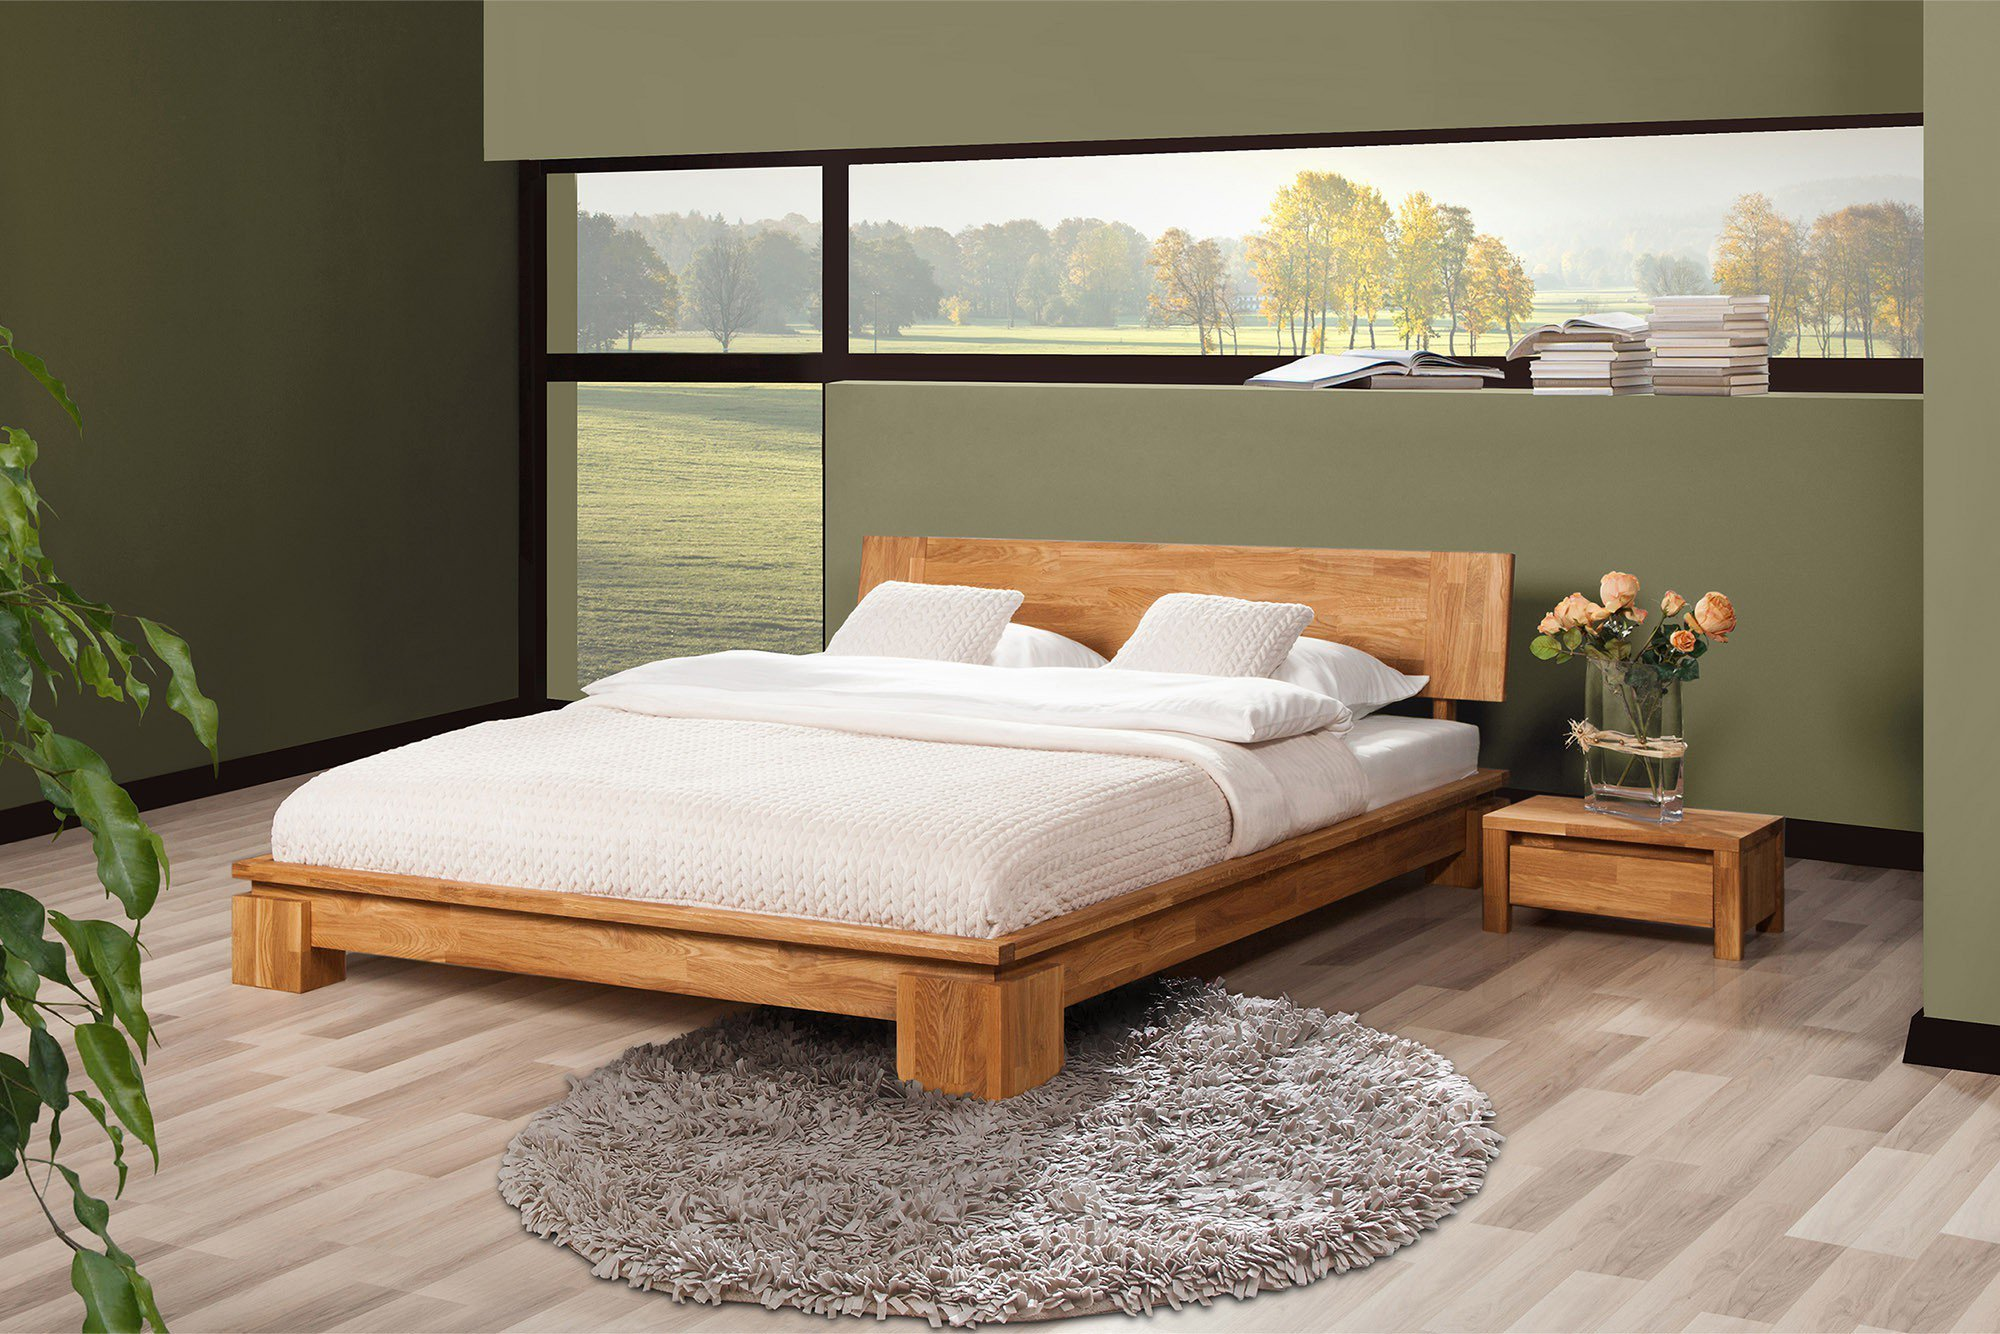 the beds vinci holzbett eiche mit kopfteil m bel letz ihr online shop. Black Bedroom Furniture Sets. Home Design Ideas